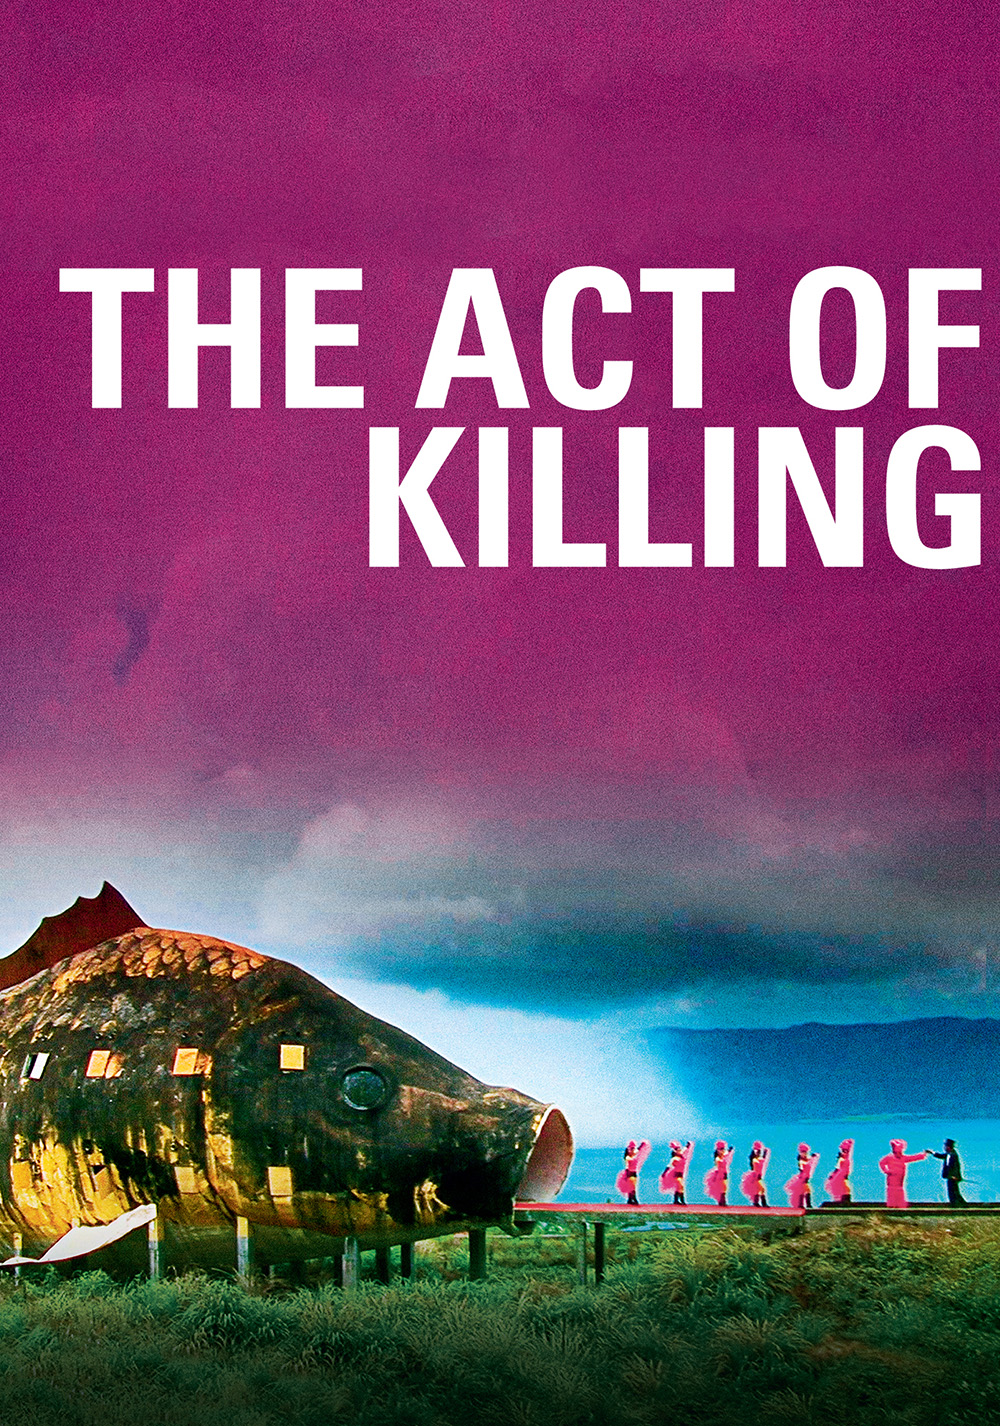 the-act-of-killing-529d5c44a2023.jpg